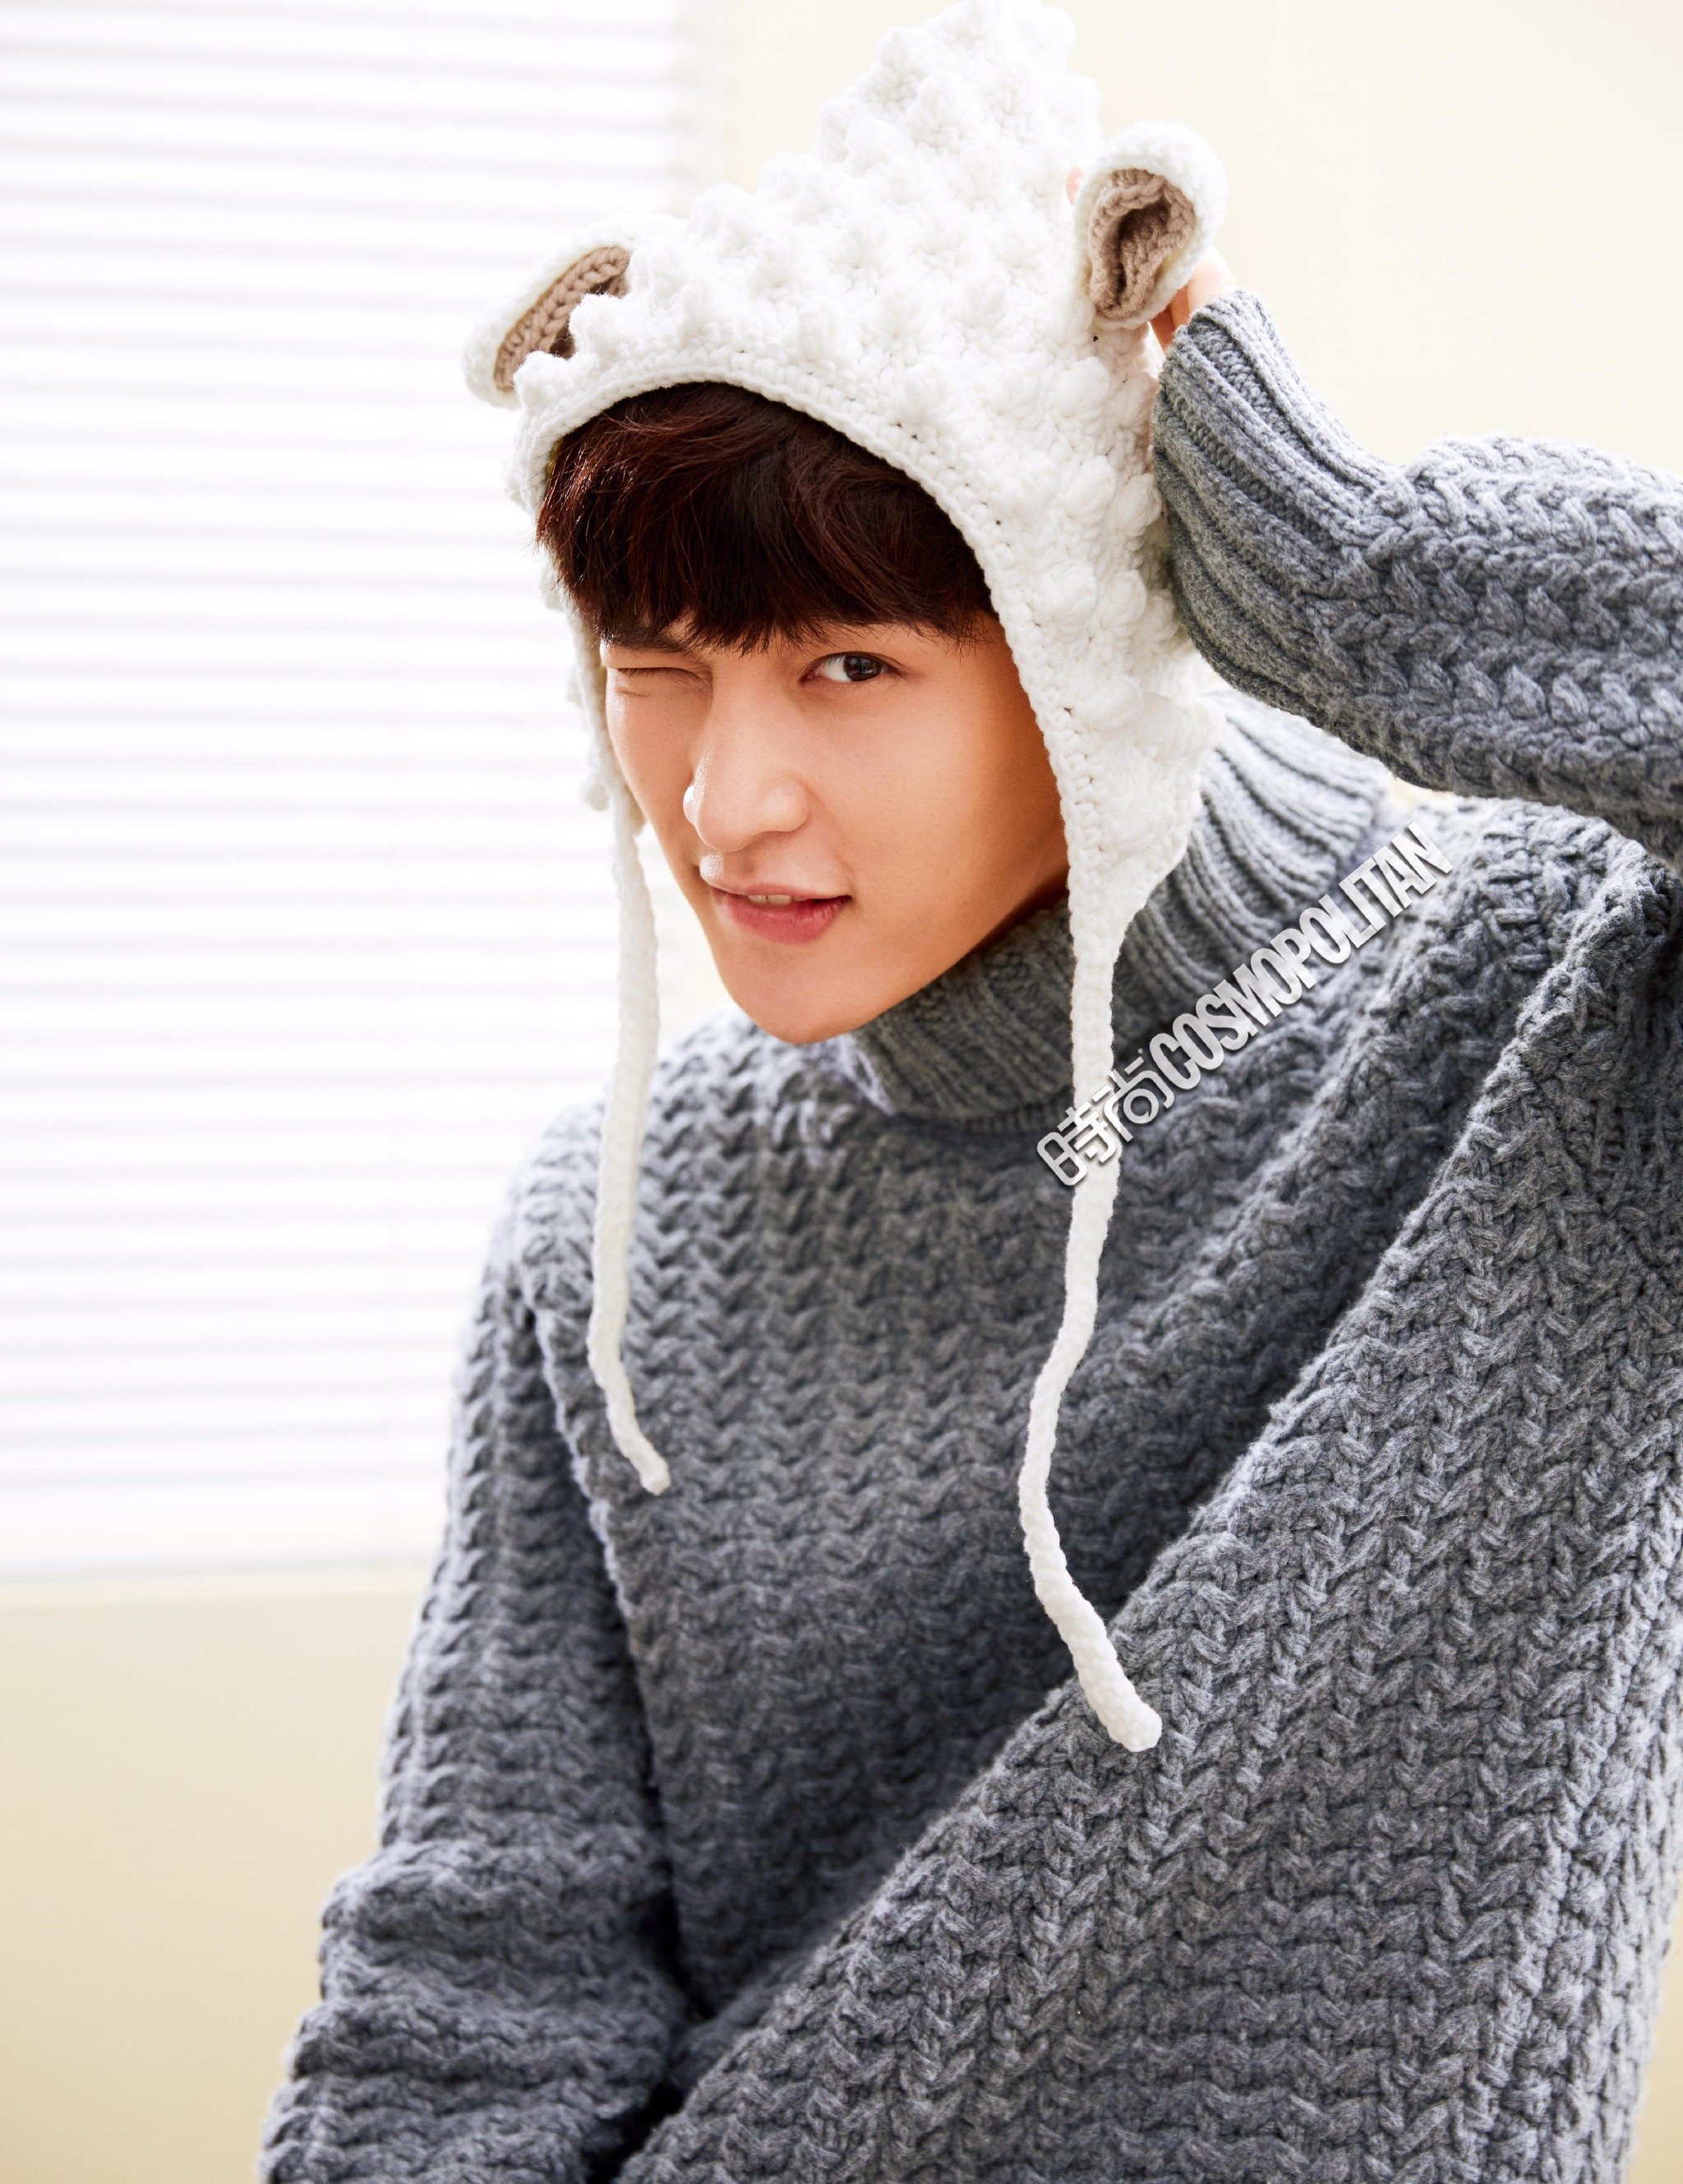 Cute Chinese Girl Wallpaper Exo S Lay Bares His Chocolate Abs For December Issue Of